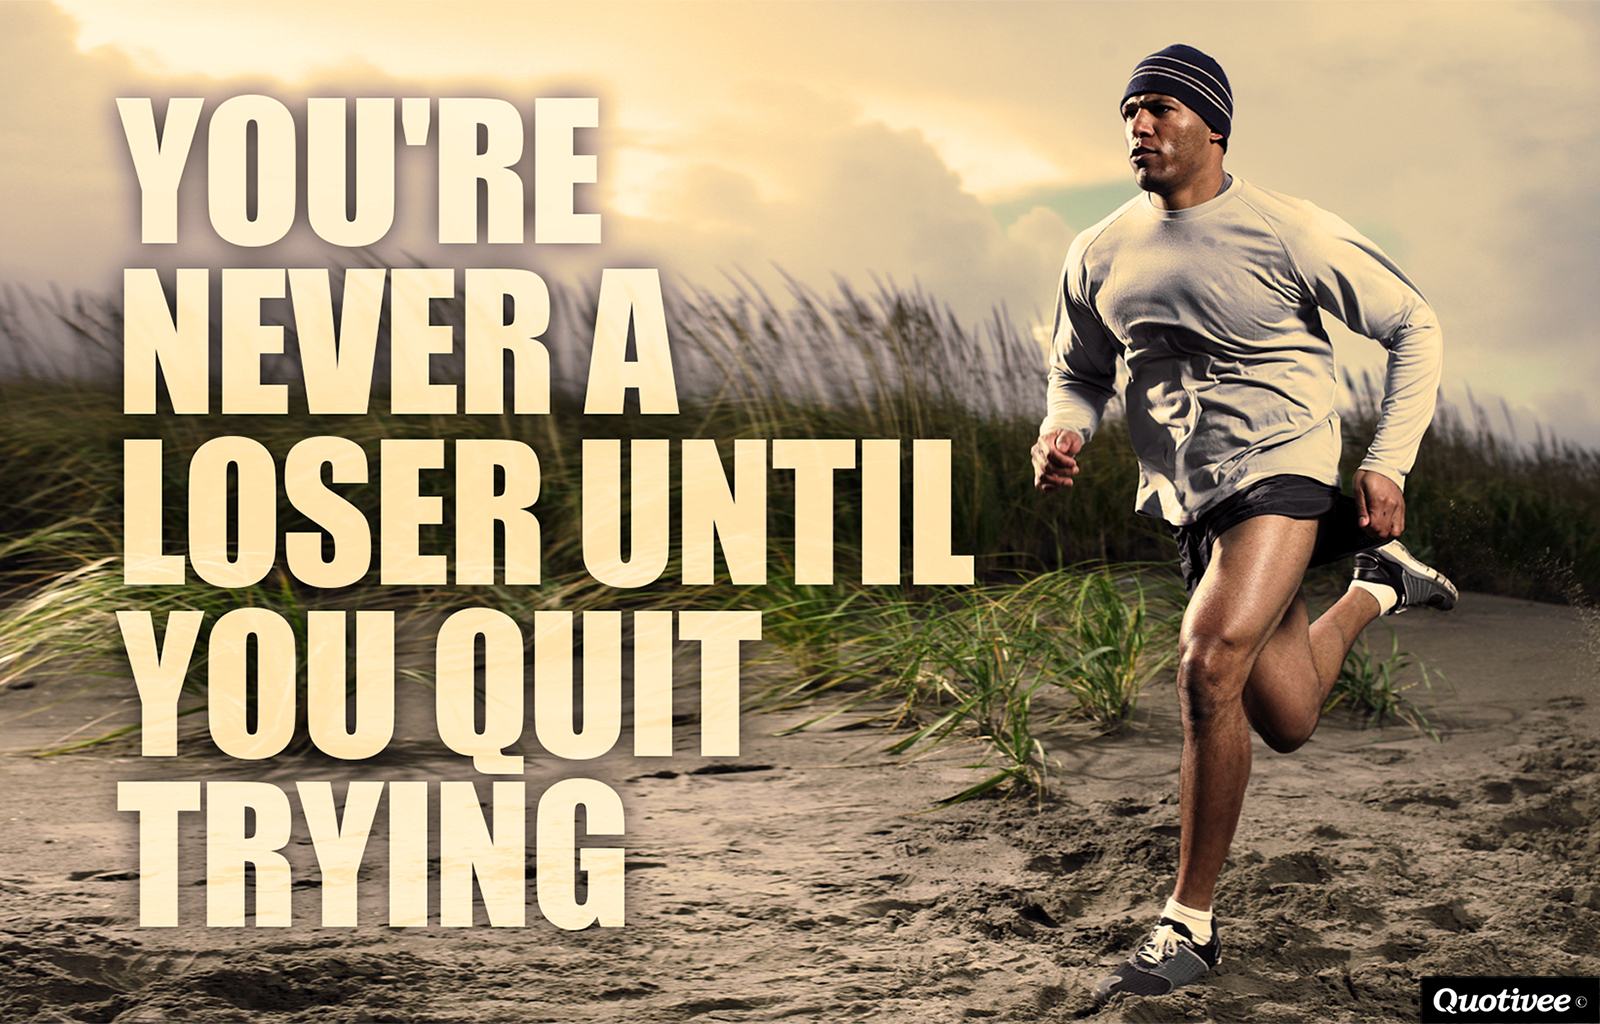 You Re Never A Loser Until You Quit Trying Inspirational Quotes Quotivee